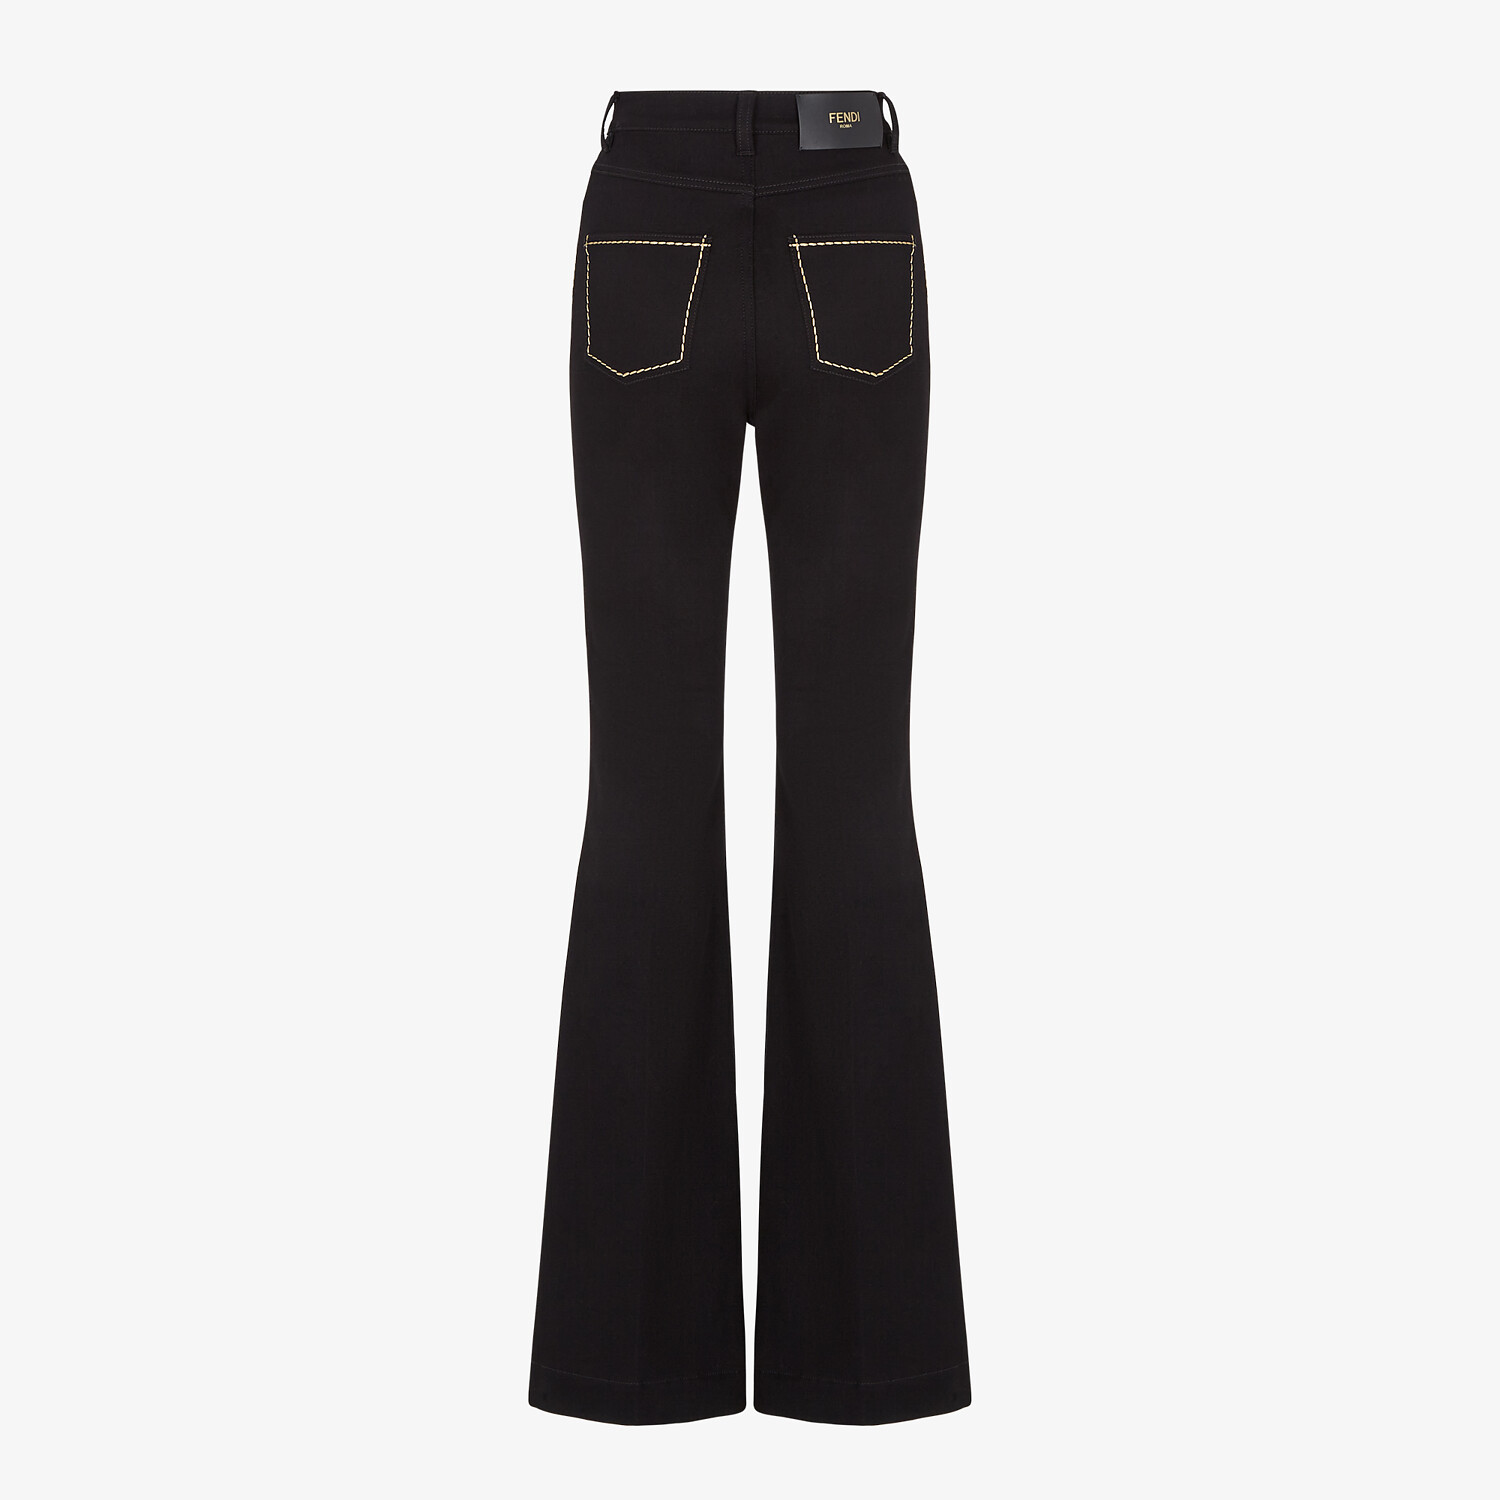 FENDI PANTS - Black denim pants - view 2 detail